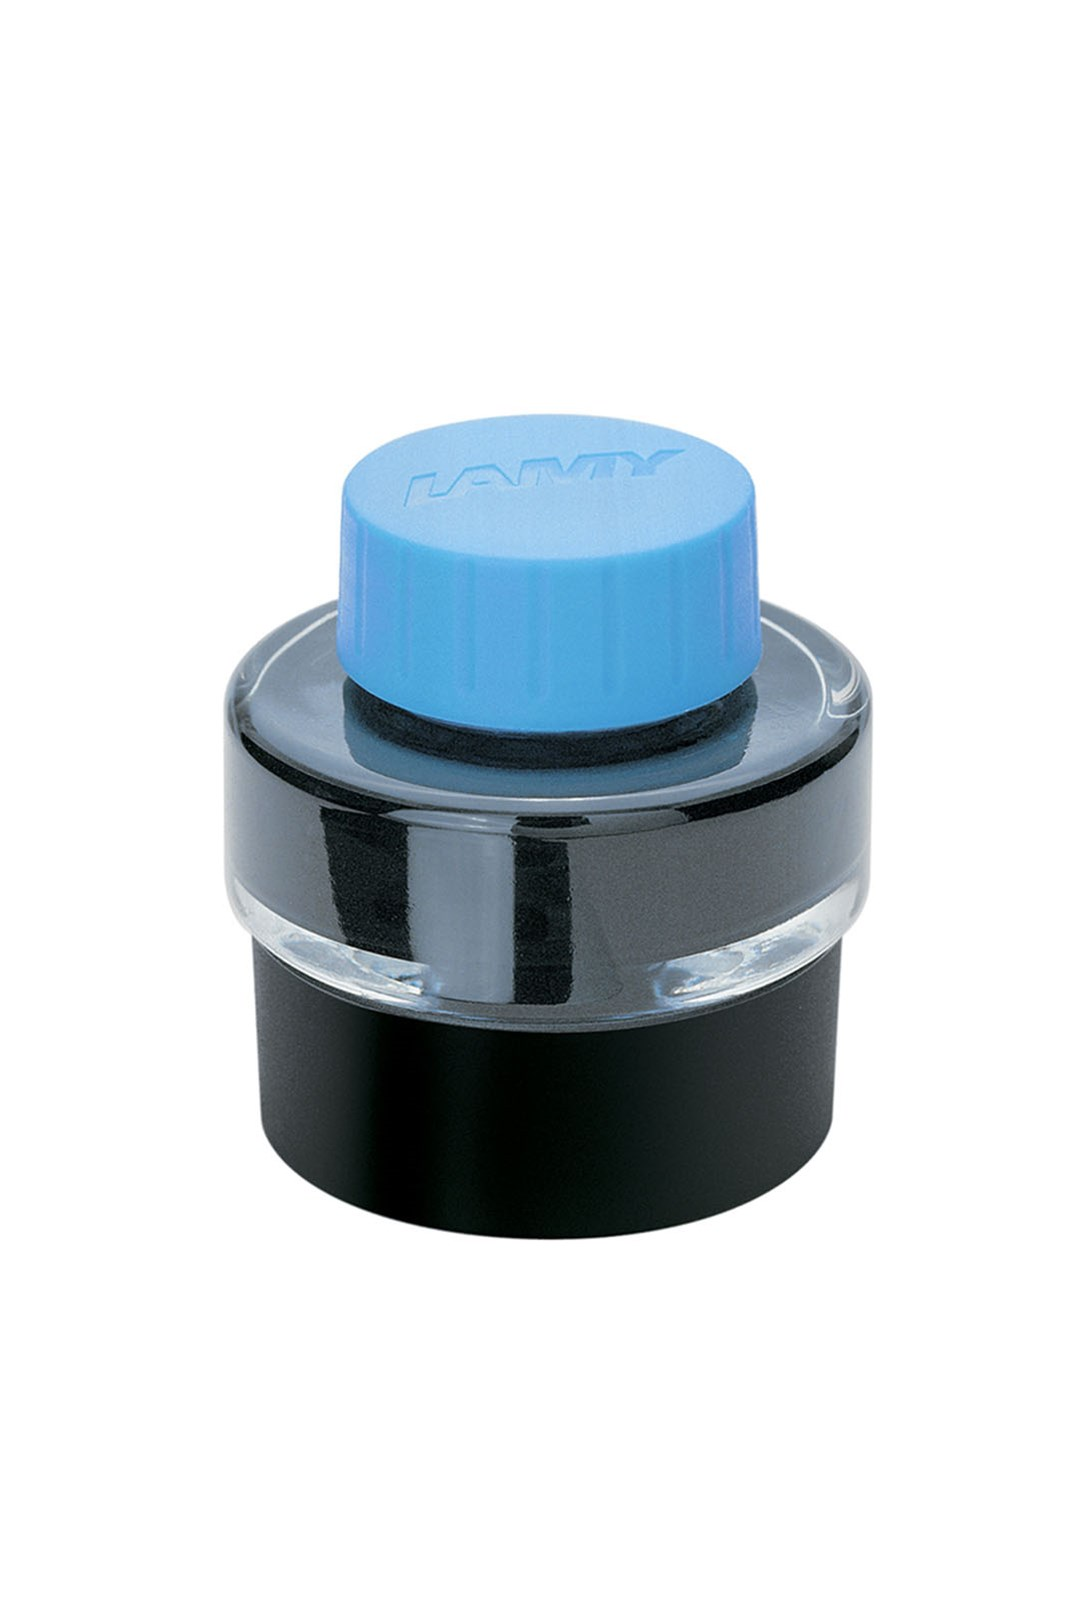 LAMY - T52 Fountain Pen Ink - 50ml Bottle - Turquoise